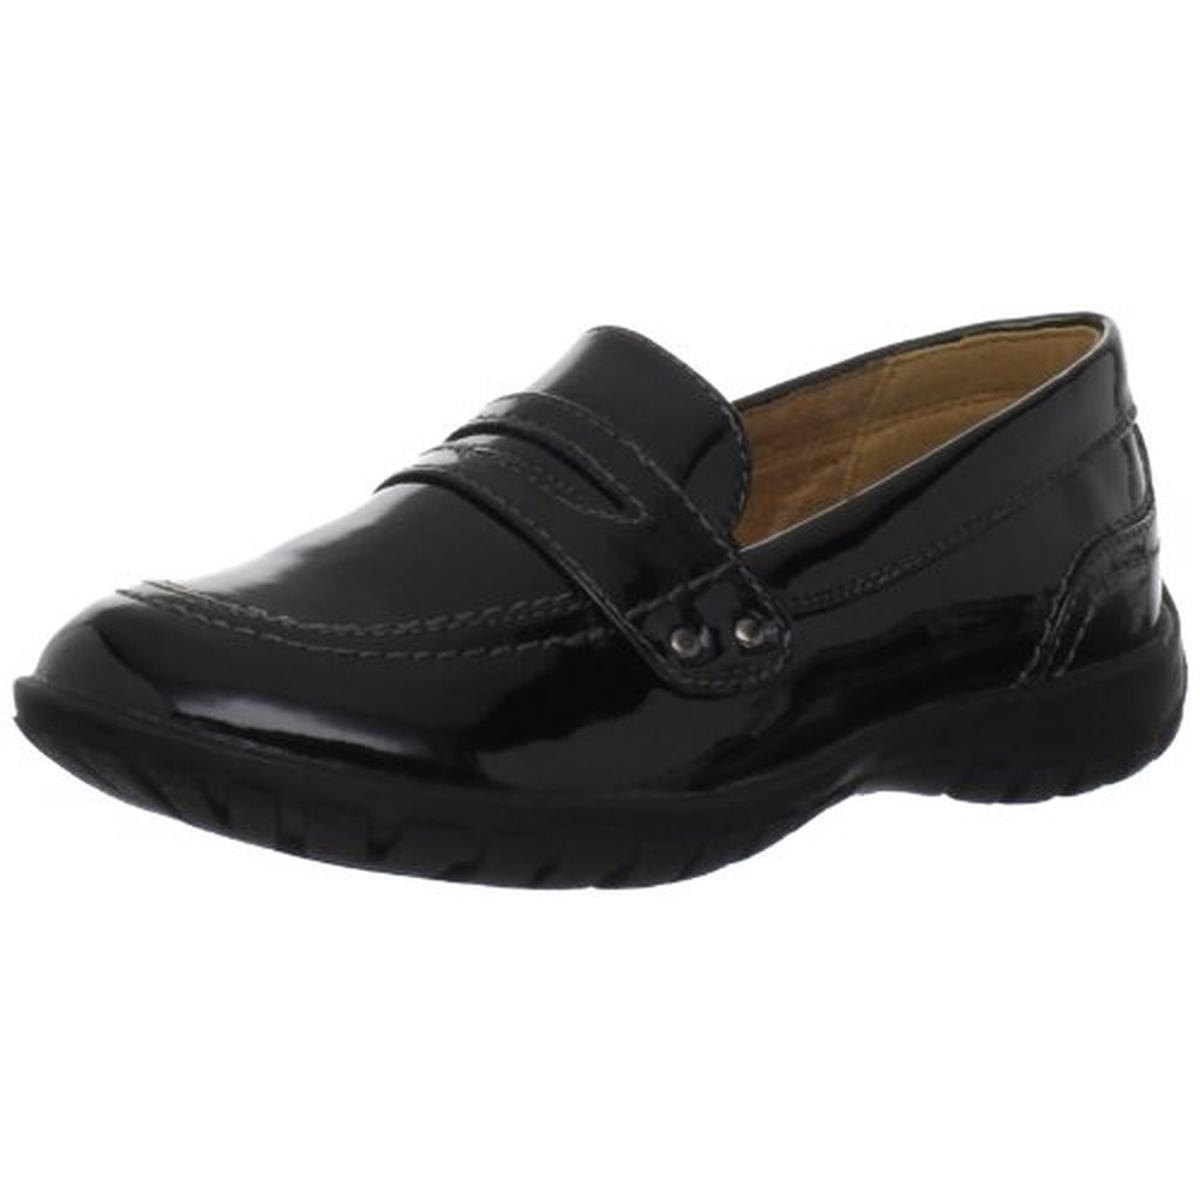 Hush Puppies Girls Salem Patent Penny Loafers by Hush Puppies